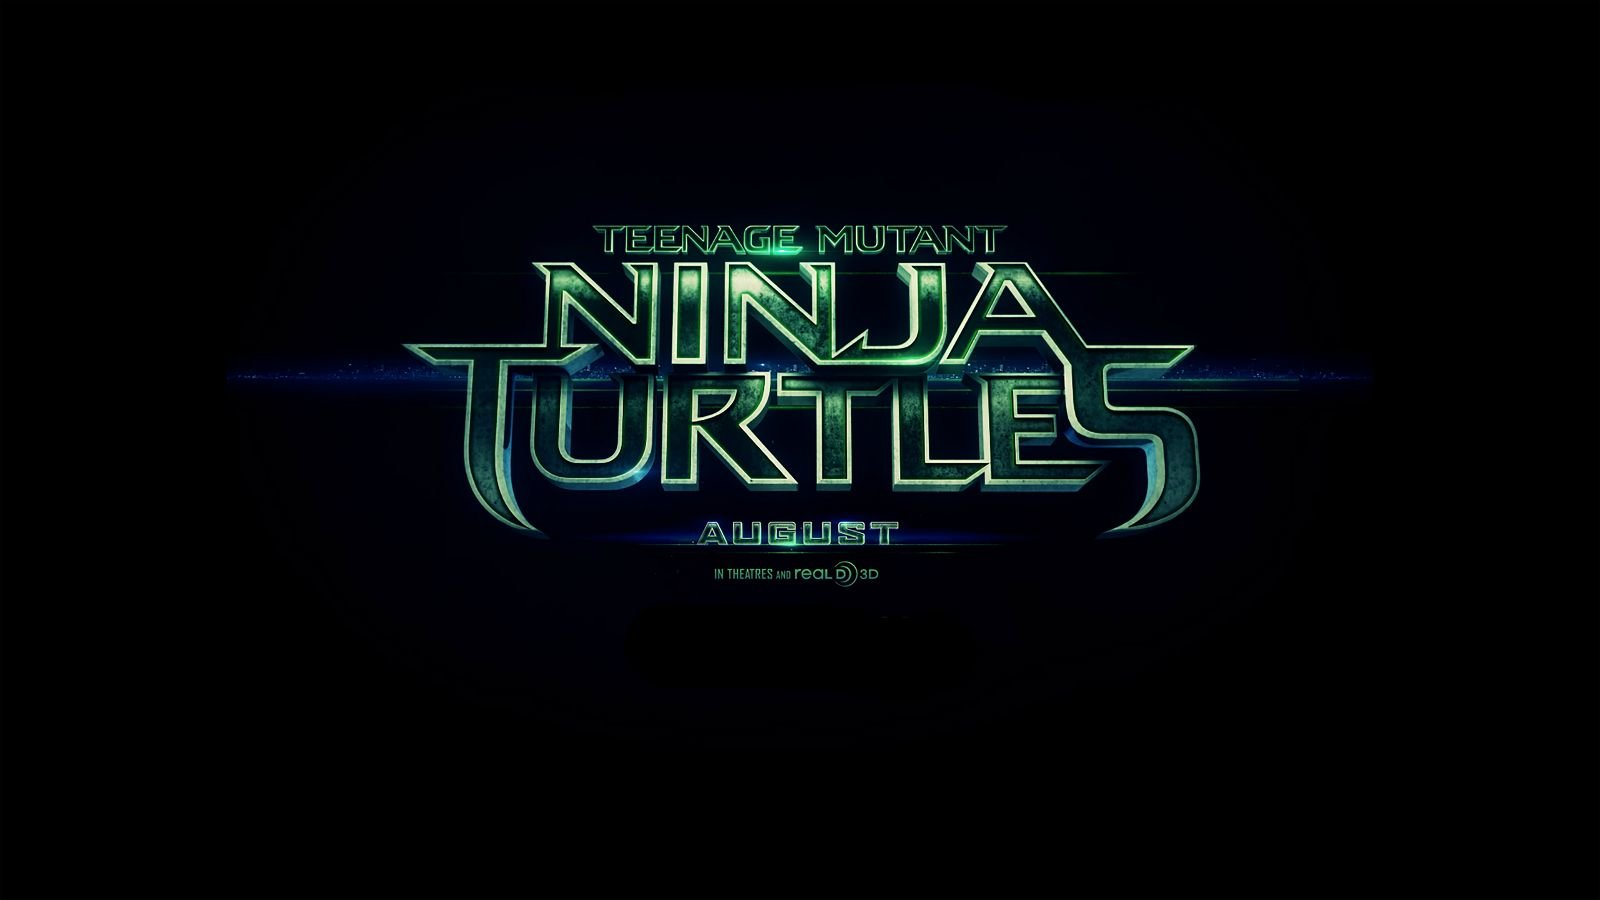 Paul gerrard 2014 teenage mutant ninja turtles movie logo poster1